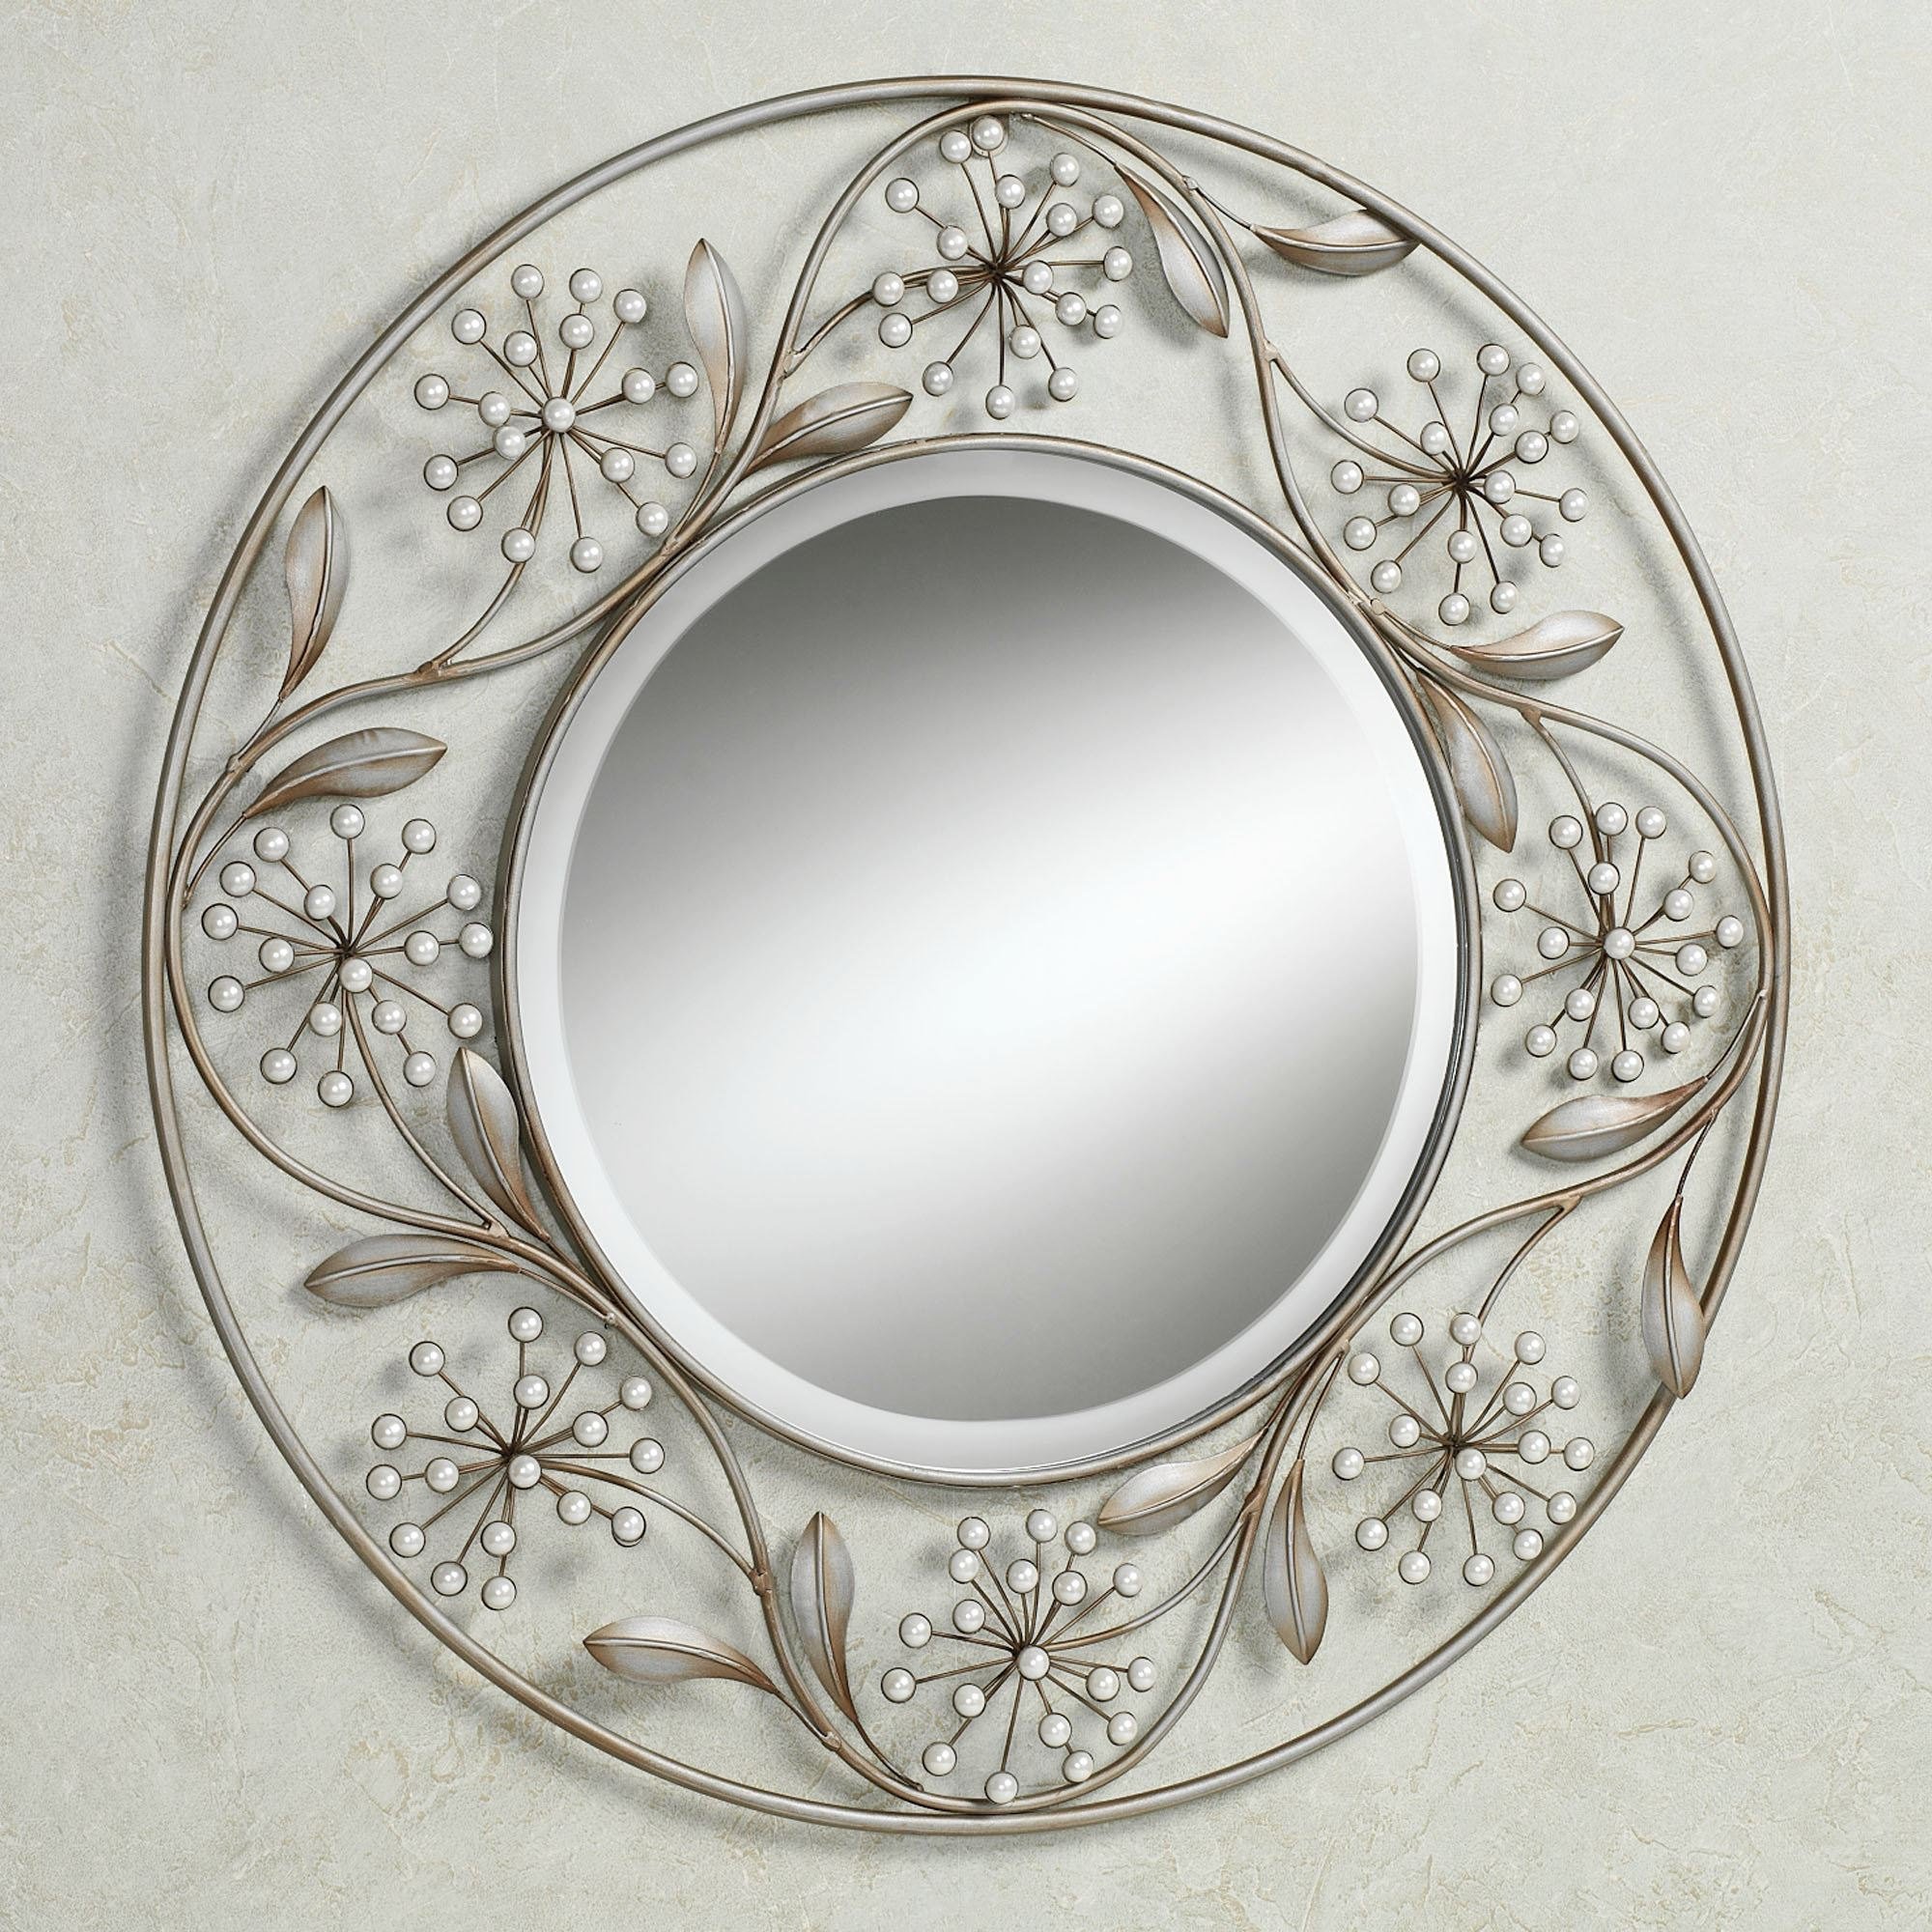 Pearlette Round Metal Wall Mirror Inside Decorative Round Wall Mirrors (Image 15 of 20)